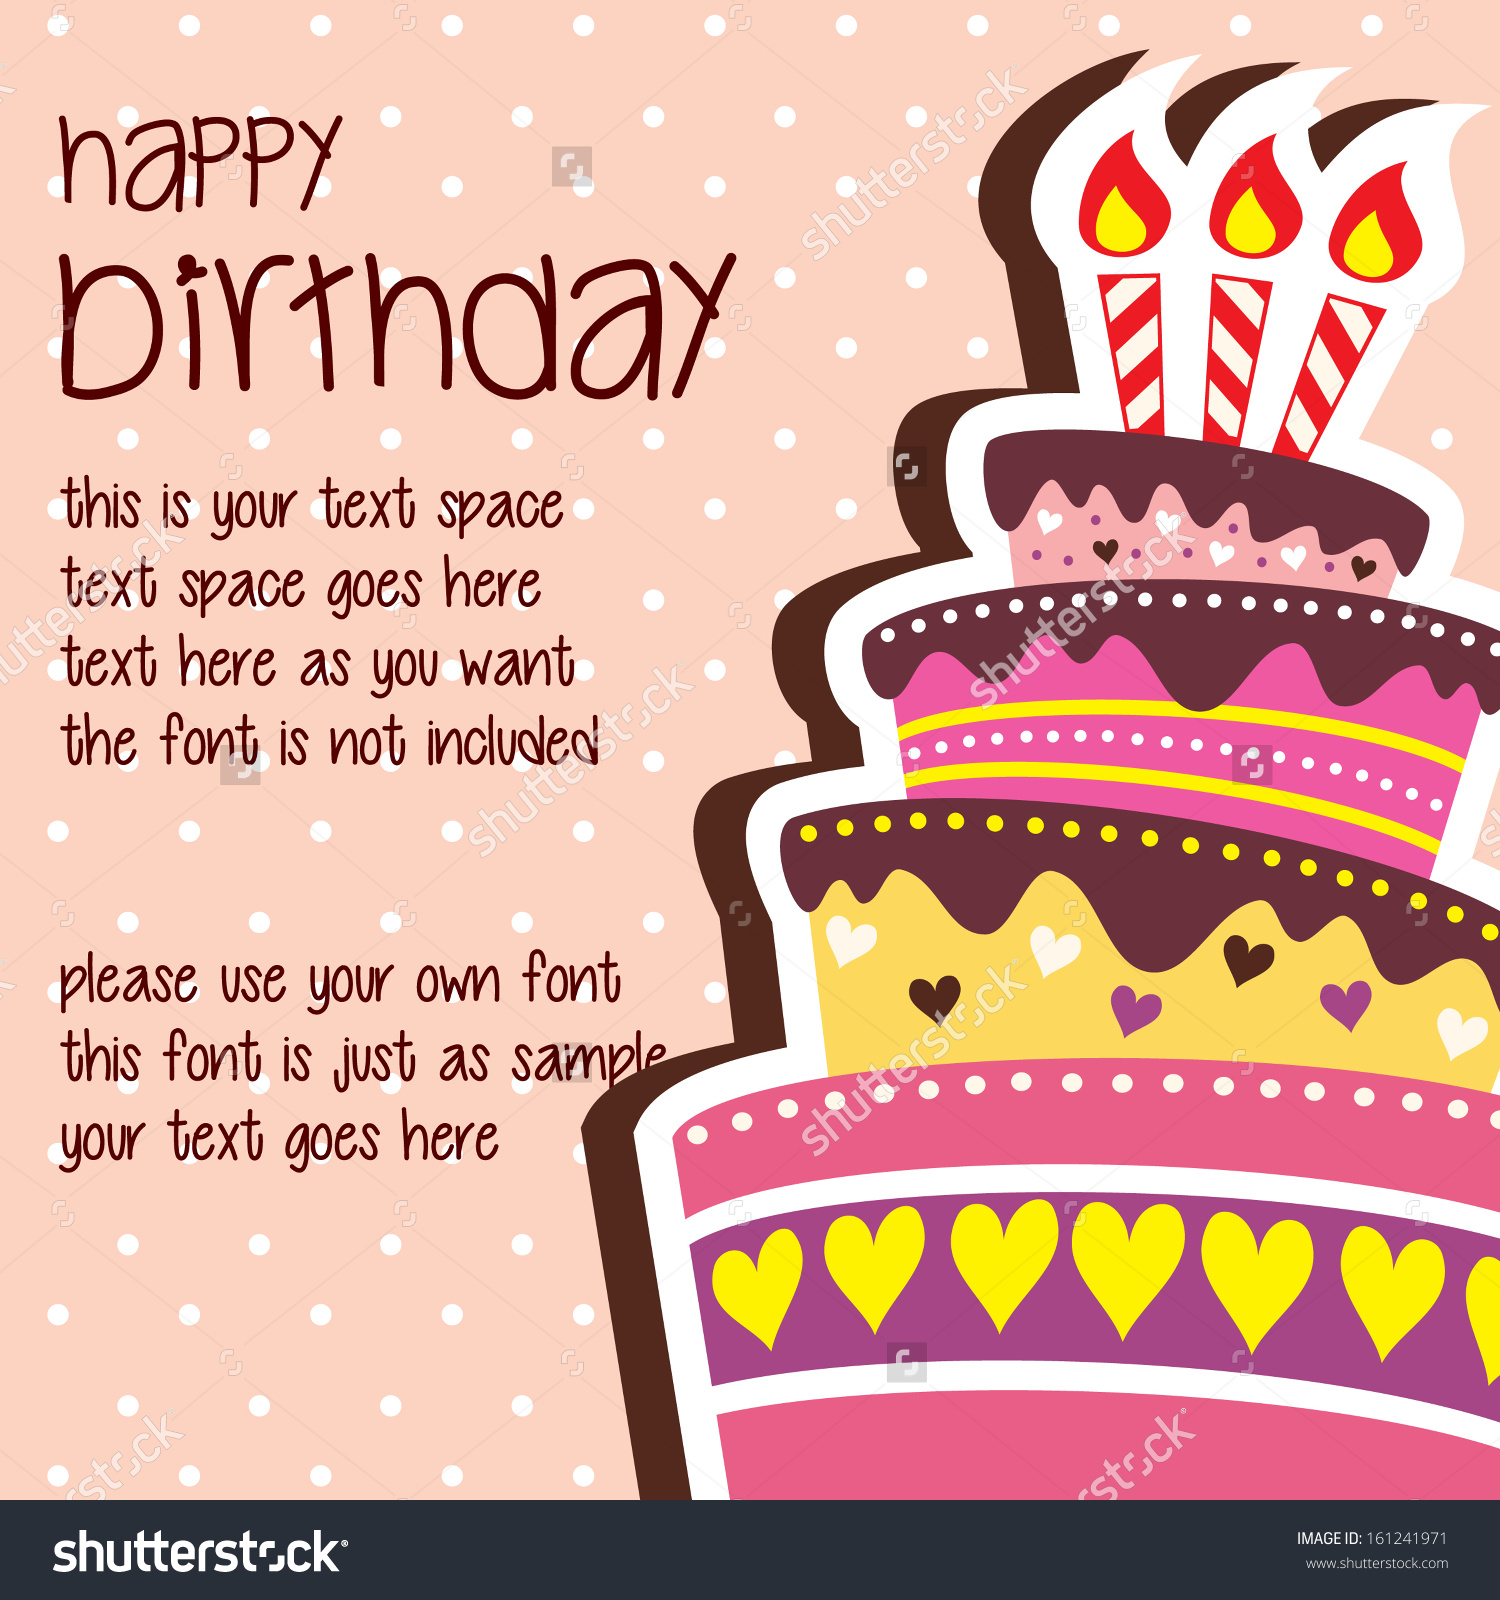 birthday wishes card design ; save-to-a-lightbox-layers-cake-design-image-layout-with-poem-and-friendly-words-pink-theme-happy-birthday-card-template